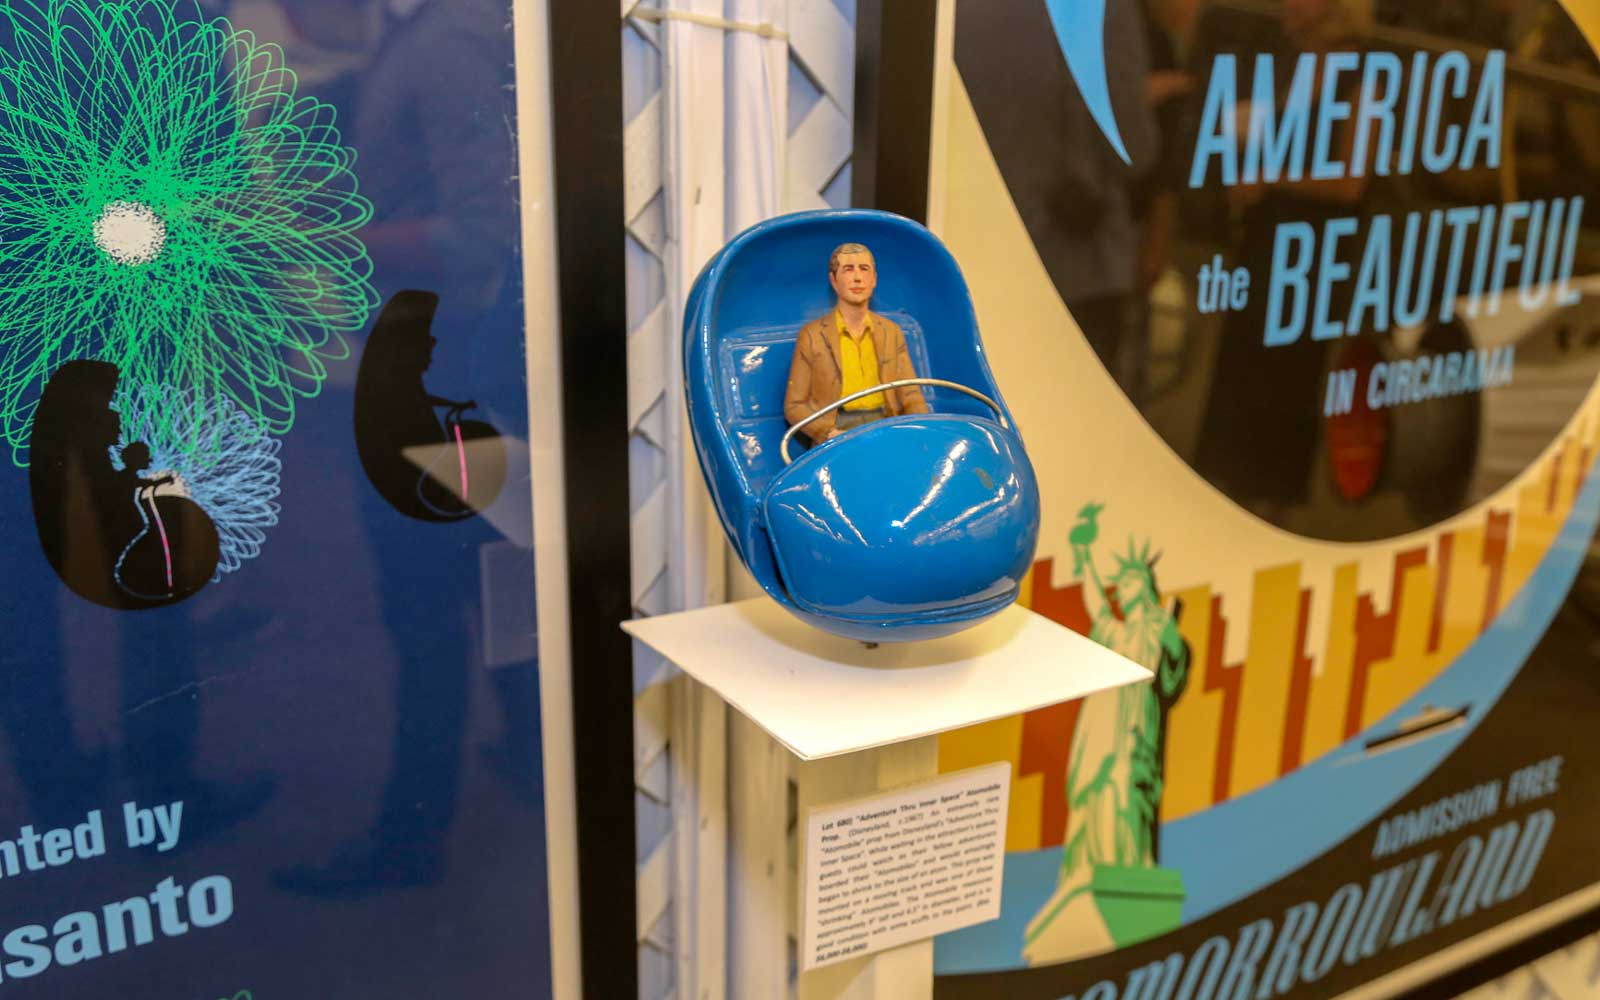 That's From Disneyland Pop-Up Exhibition and Auction